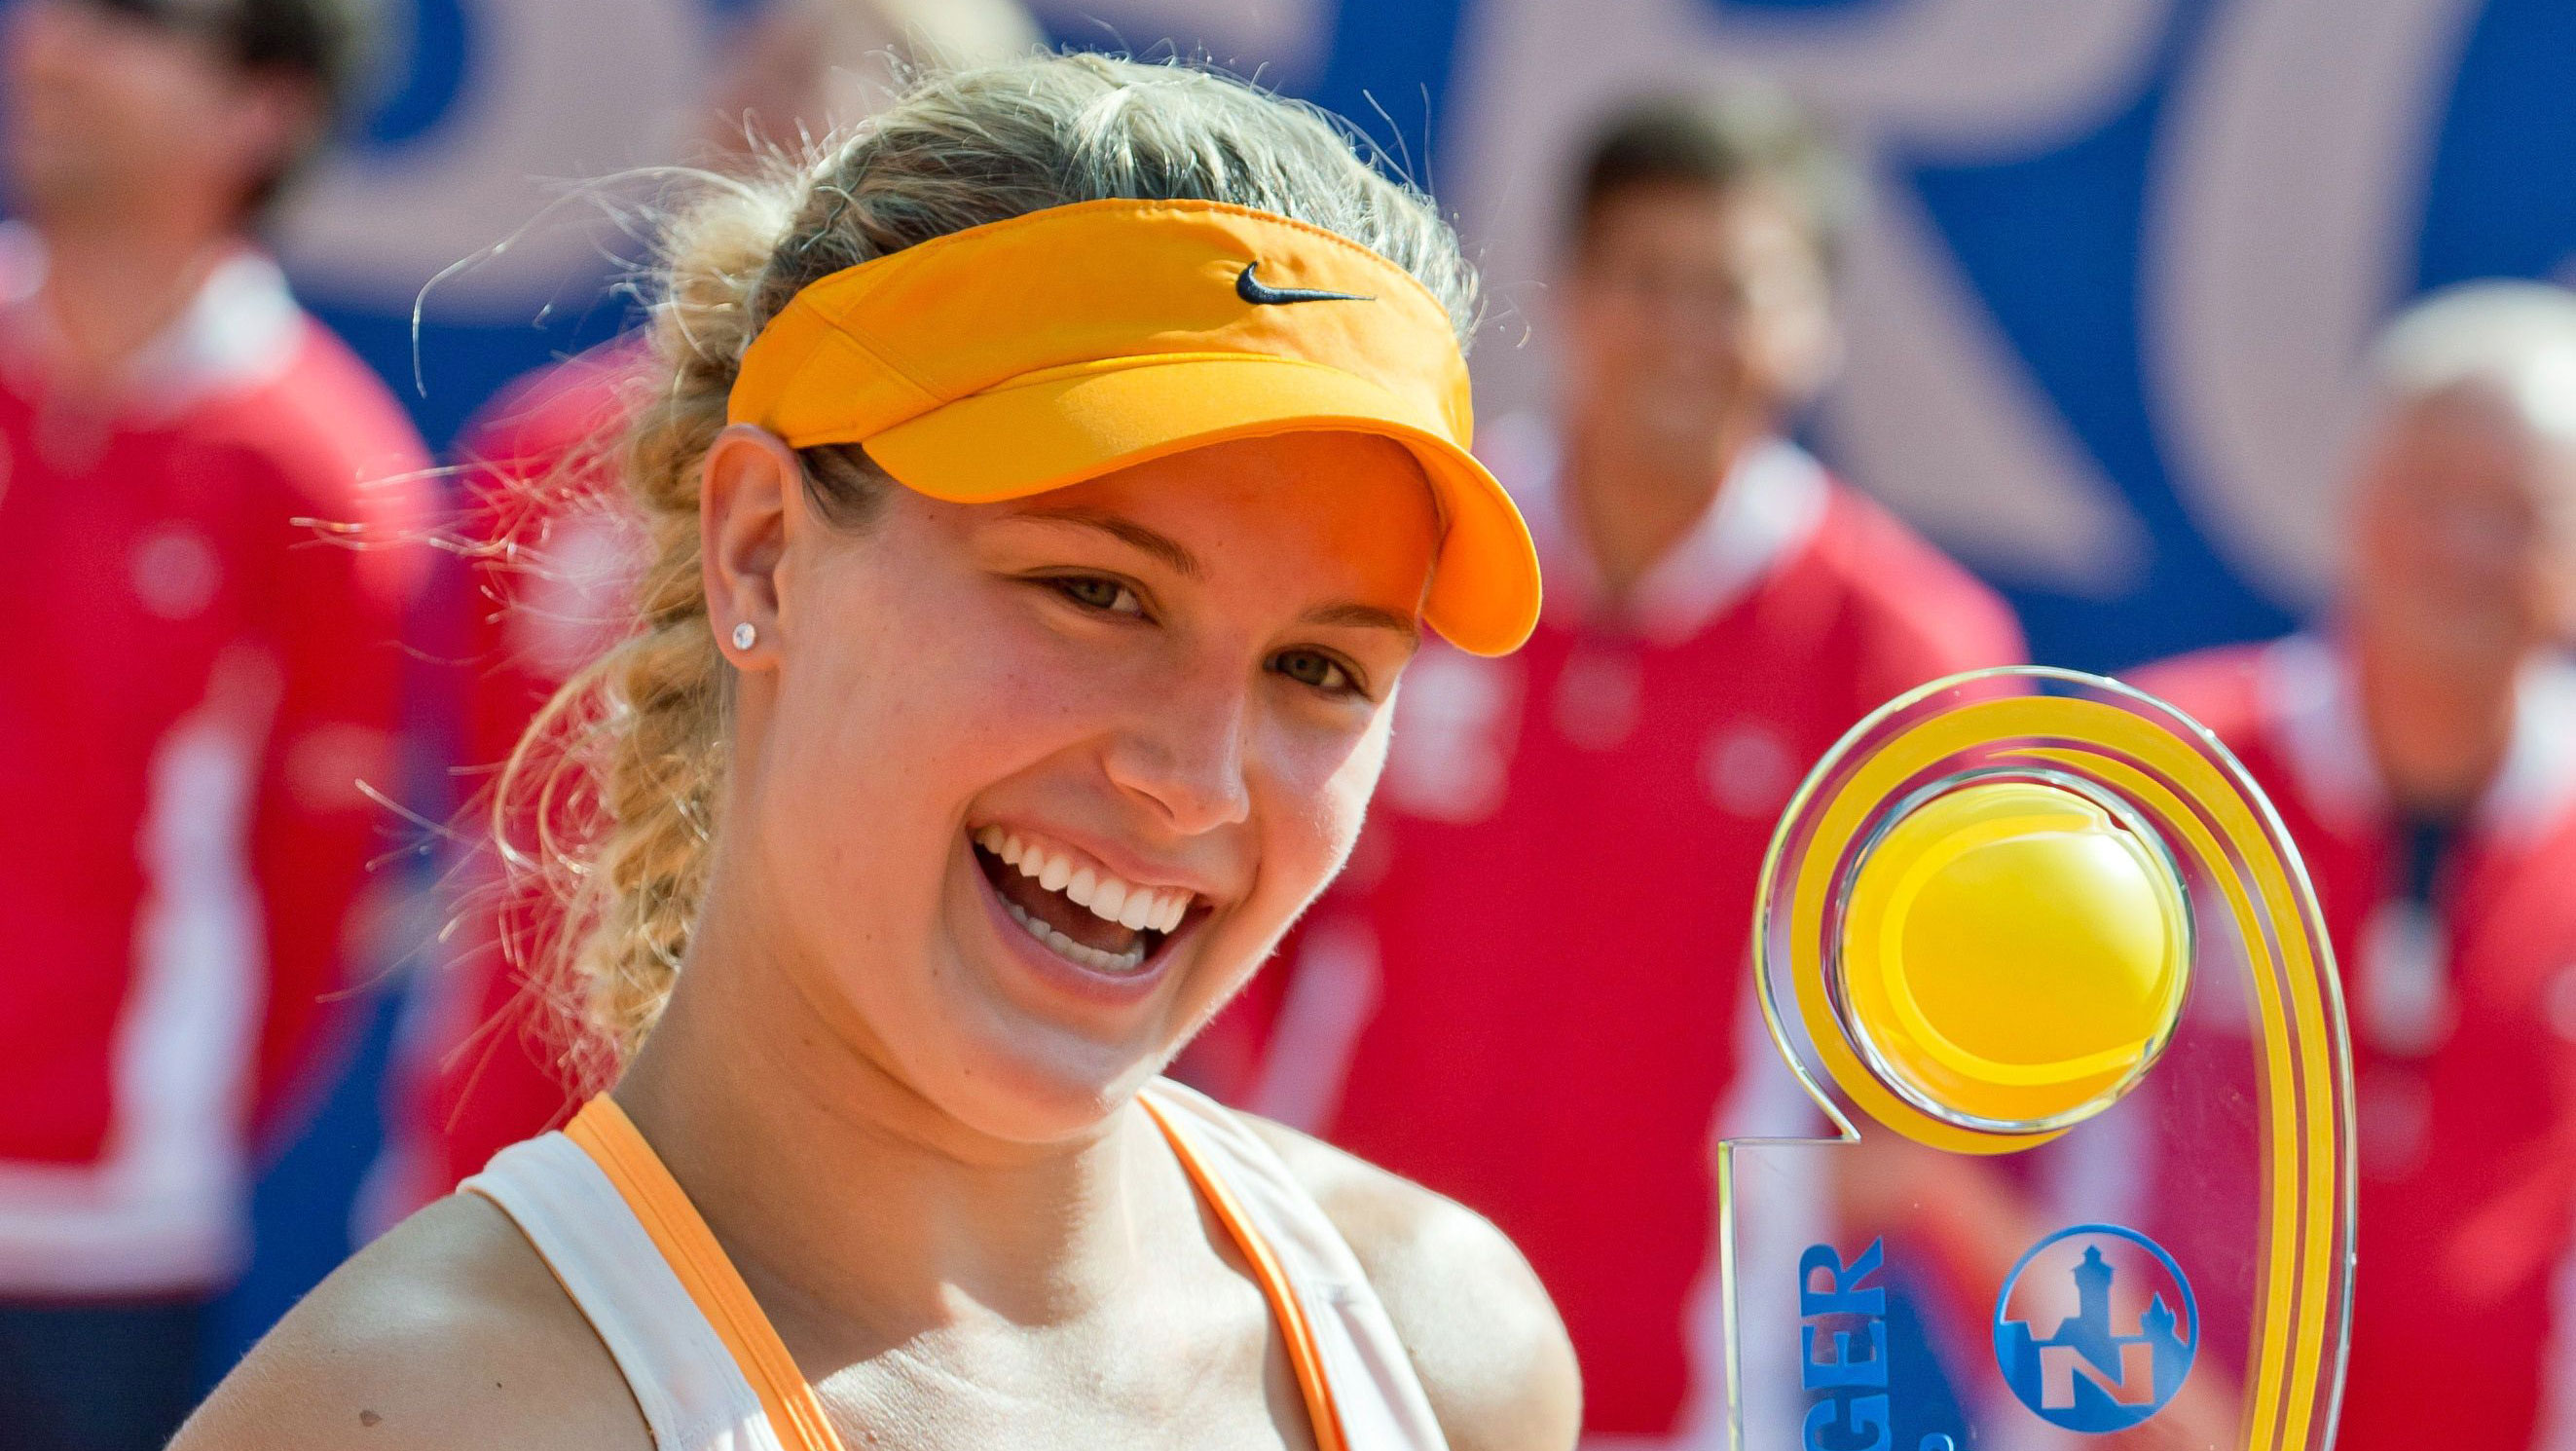 Amazing Eugenie Bouchard Beautiful Smiling Look Still Mobile Background Free Hd Desktop Wallpaper